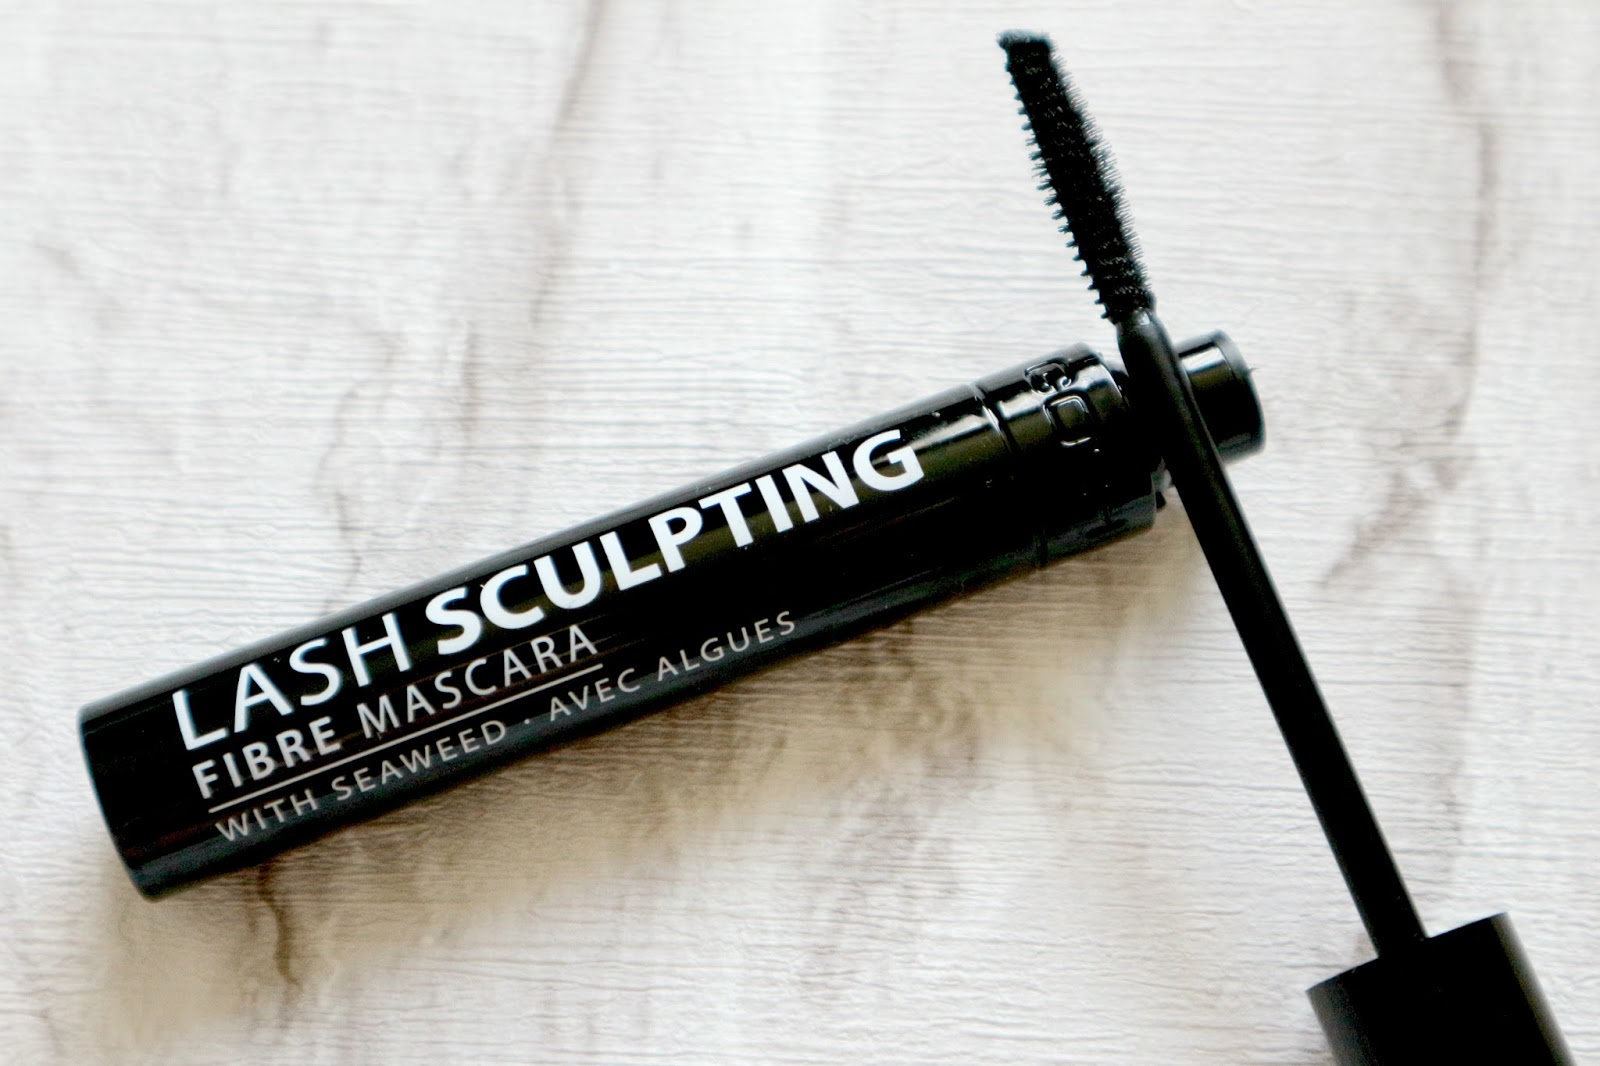 GOSH Lash Sculpting Fibre Mascara